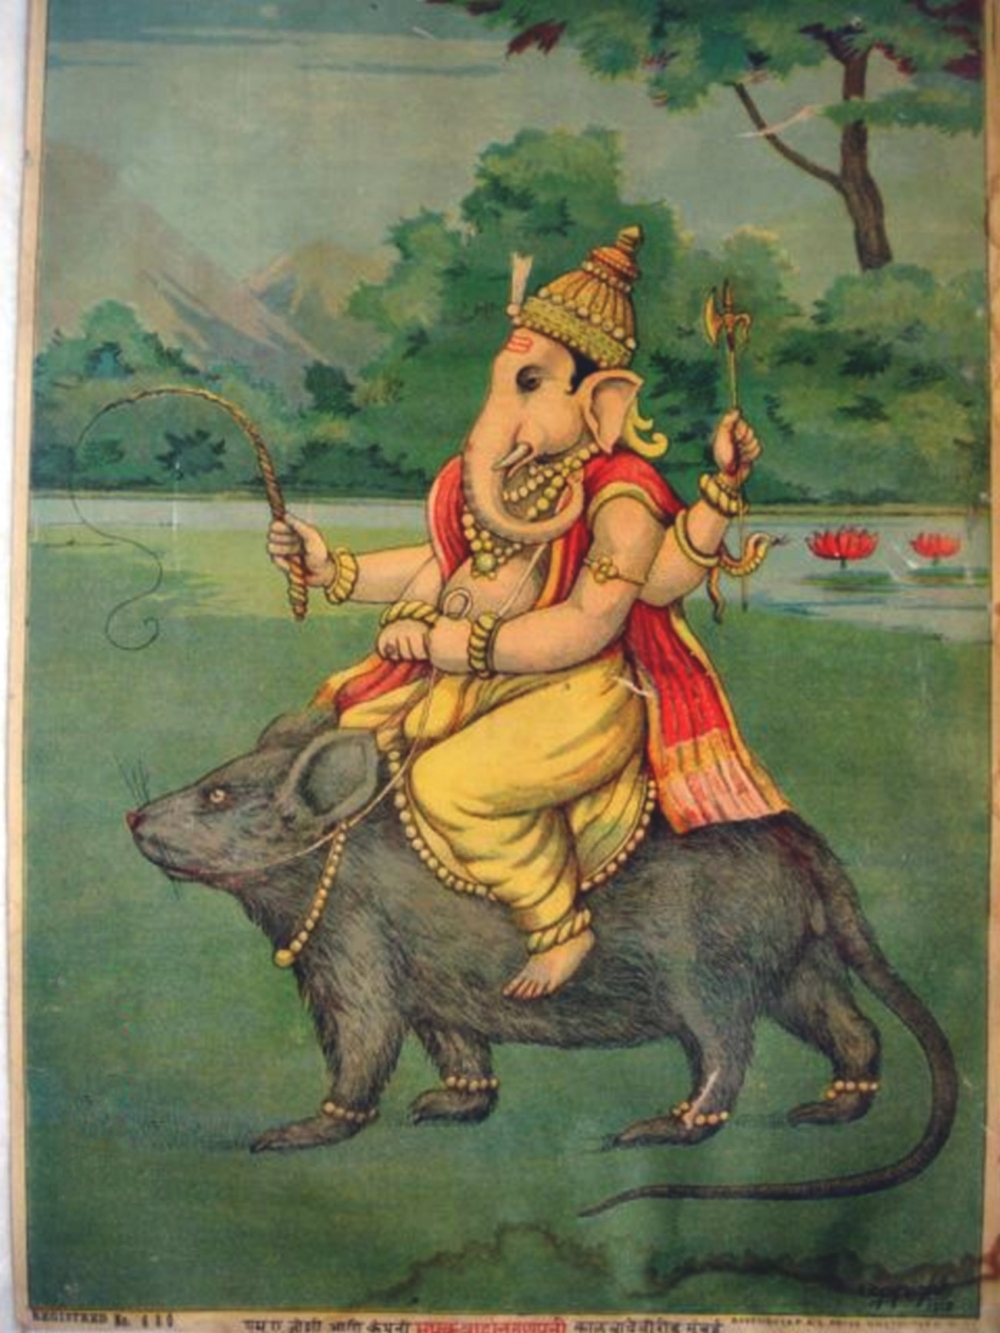 Ganesh on his vahana, a mouse or rat; bazaar art, 1910, Courtesy: Wikimedia Commons